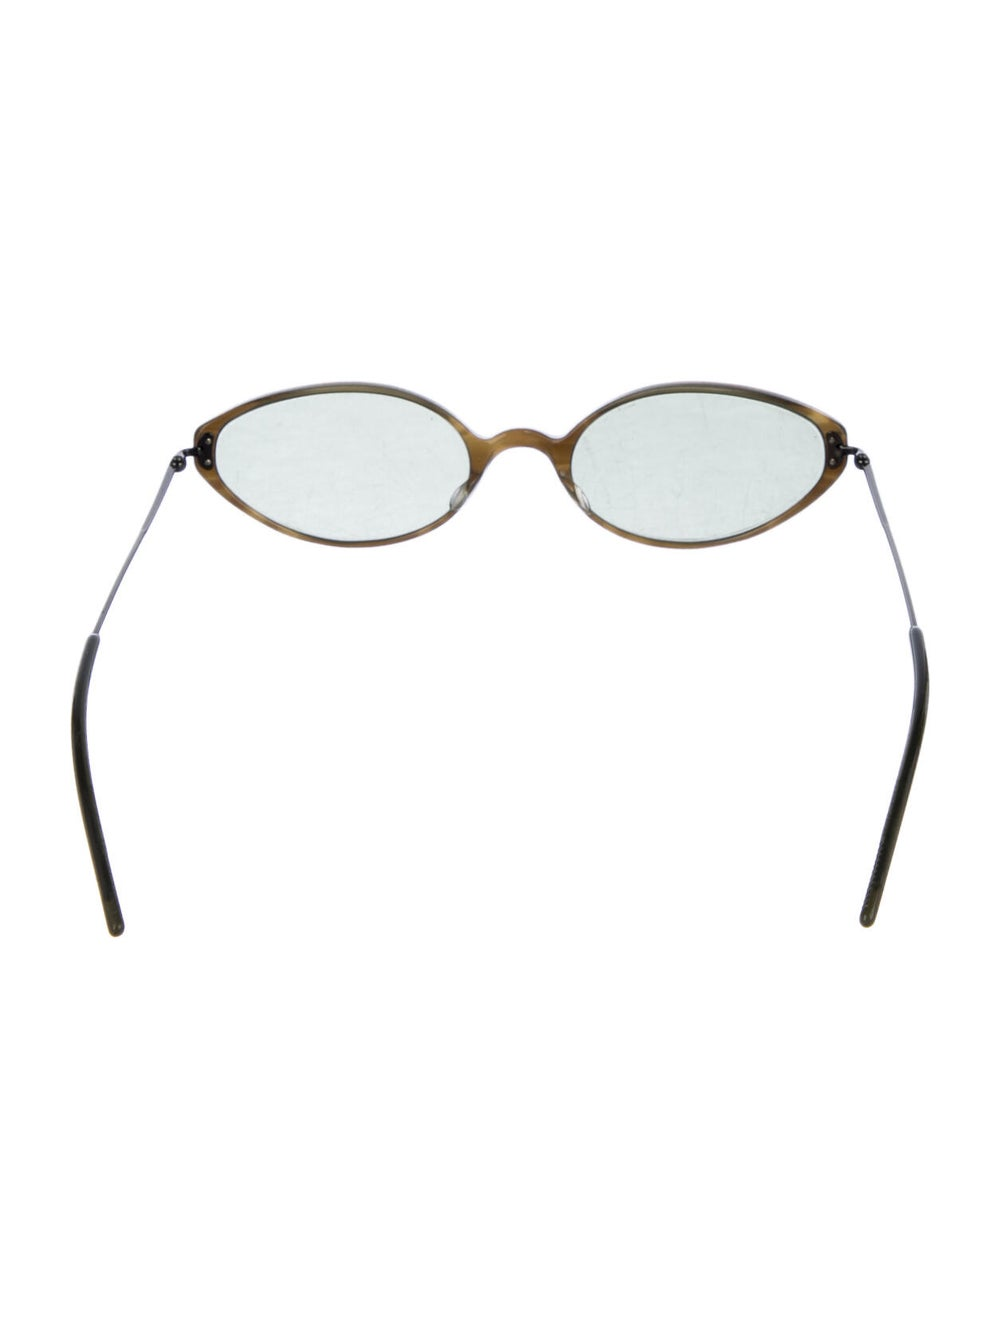 Oliver Peoples Cat-Eye Tinted Sunglasses Green - image 3